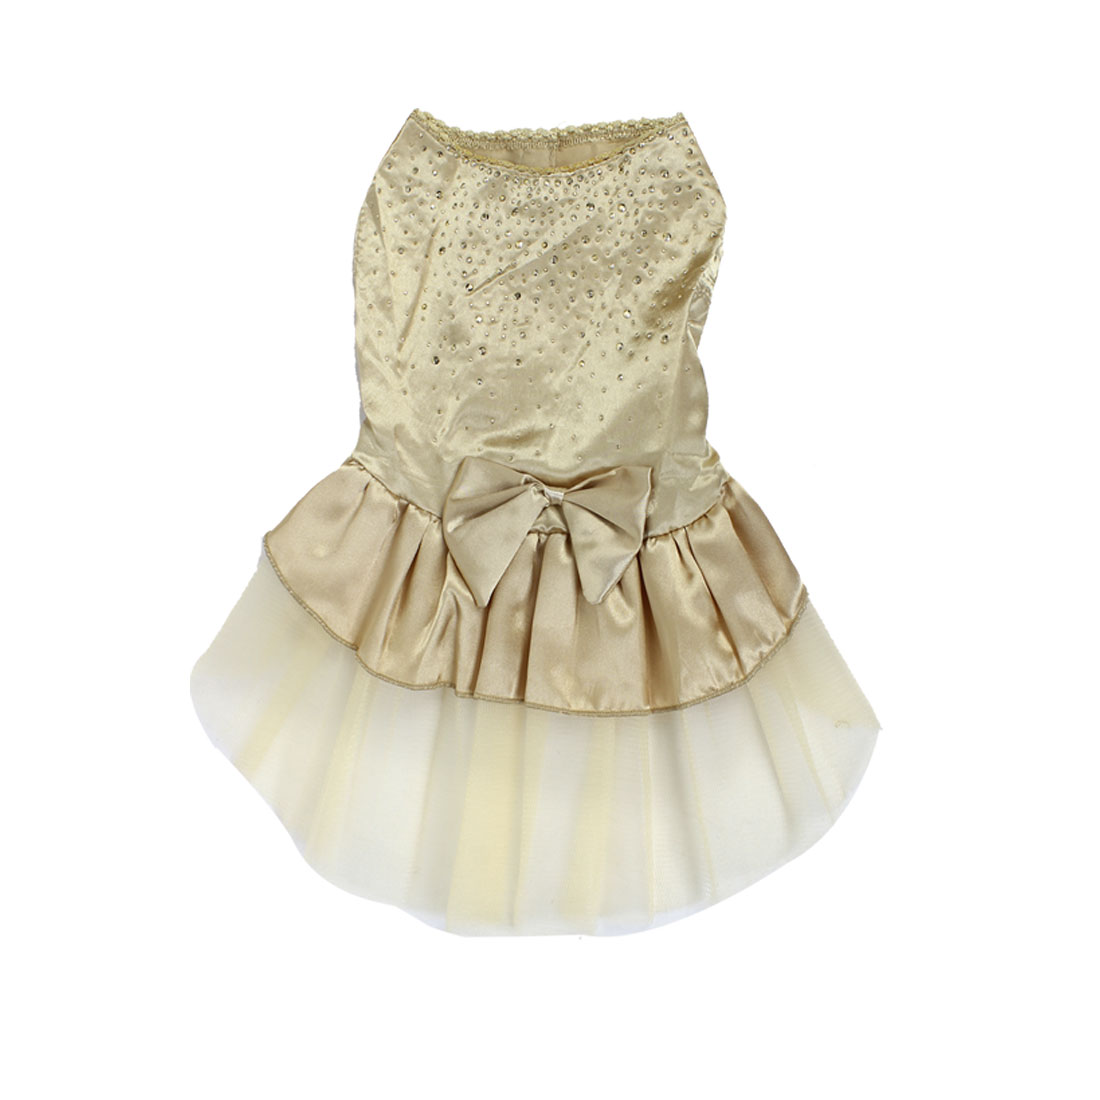 Pet Puppy Shiny Point Princess Bowknot Decor Party Dress Skirt Gold Tone Size S